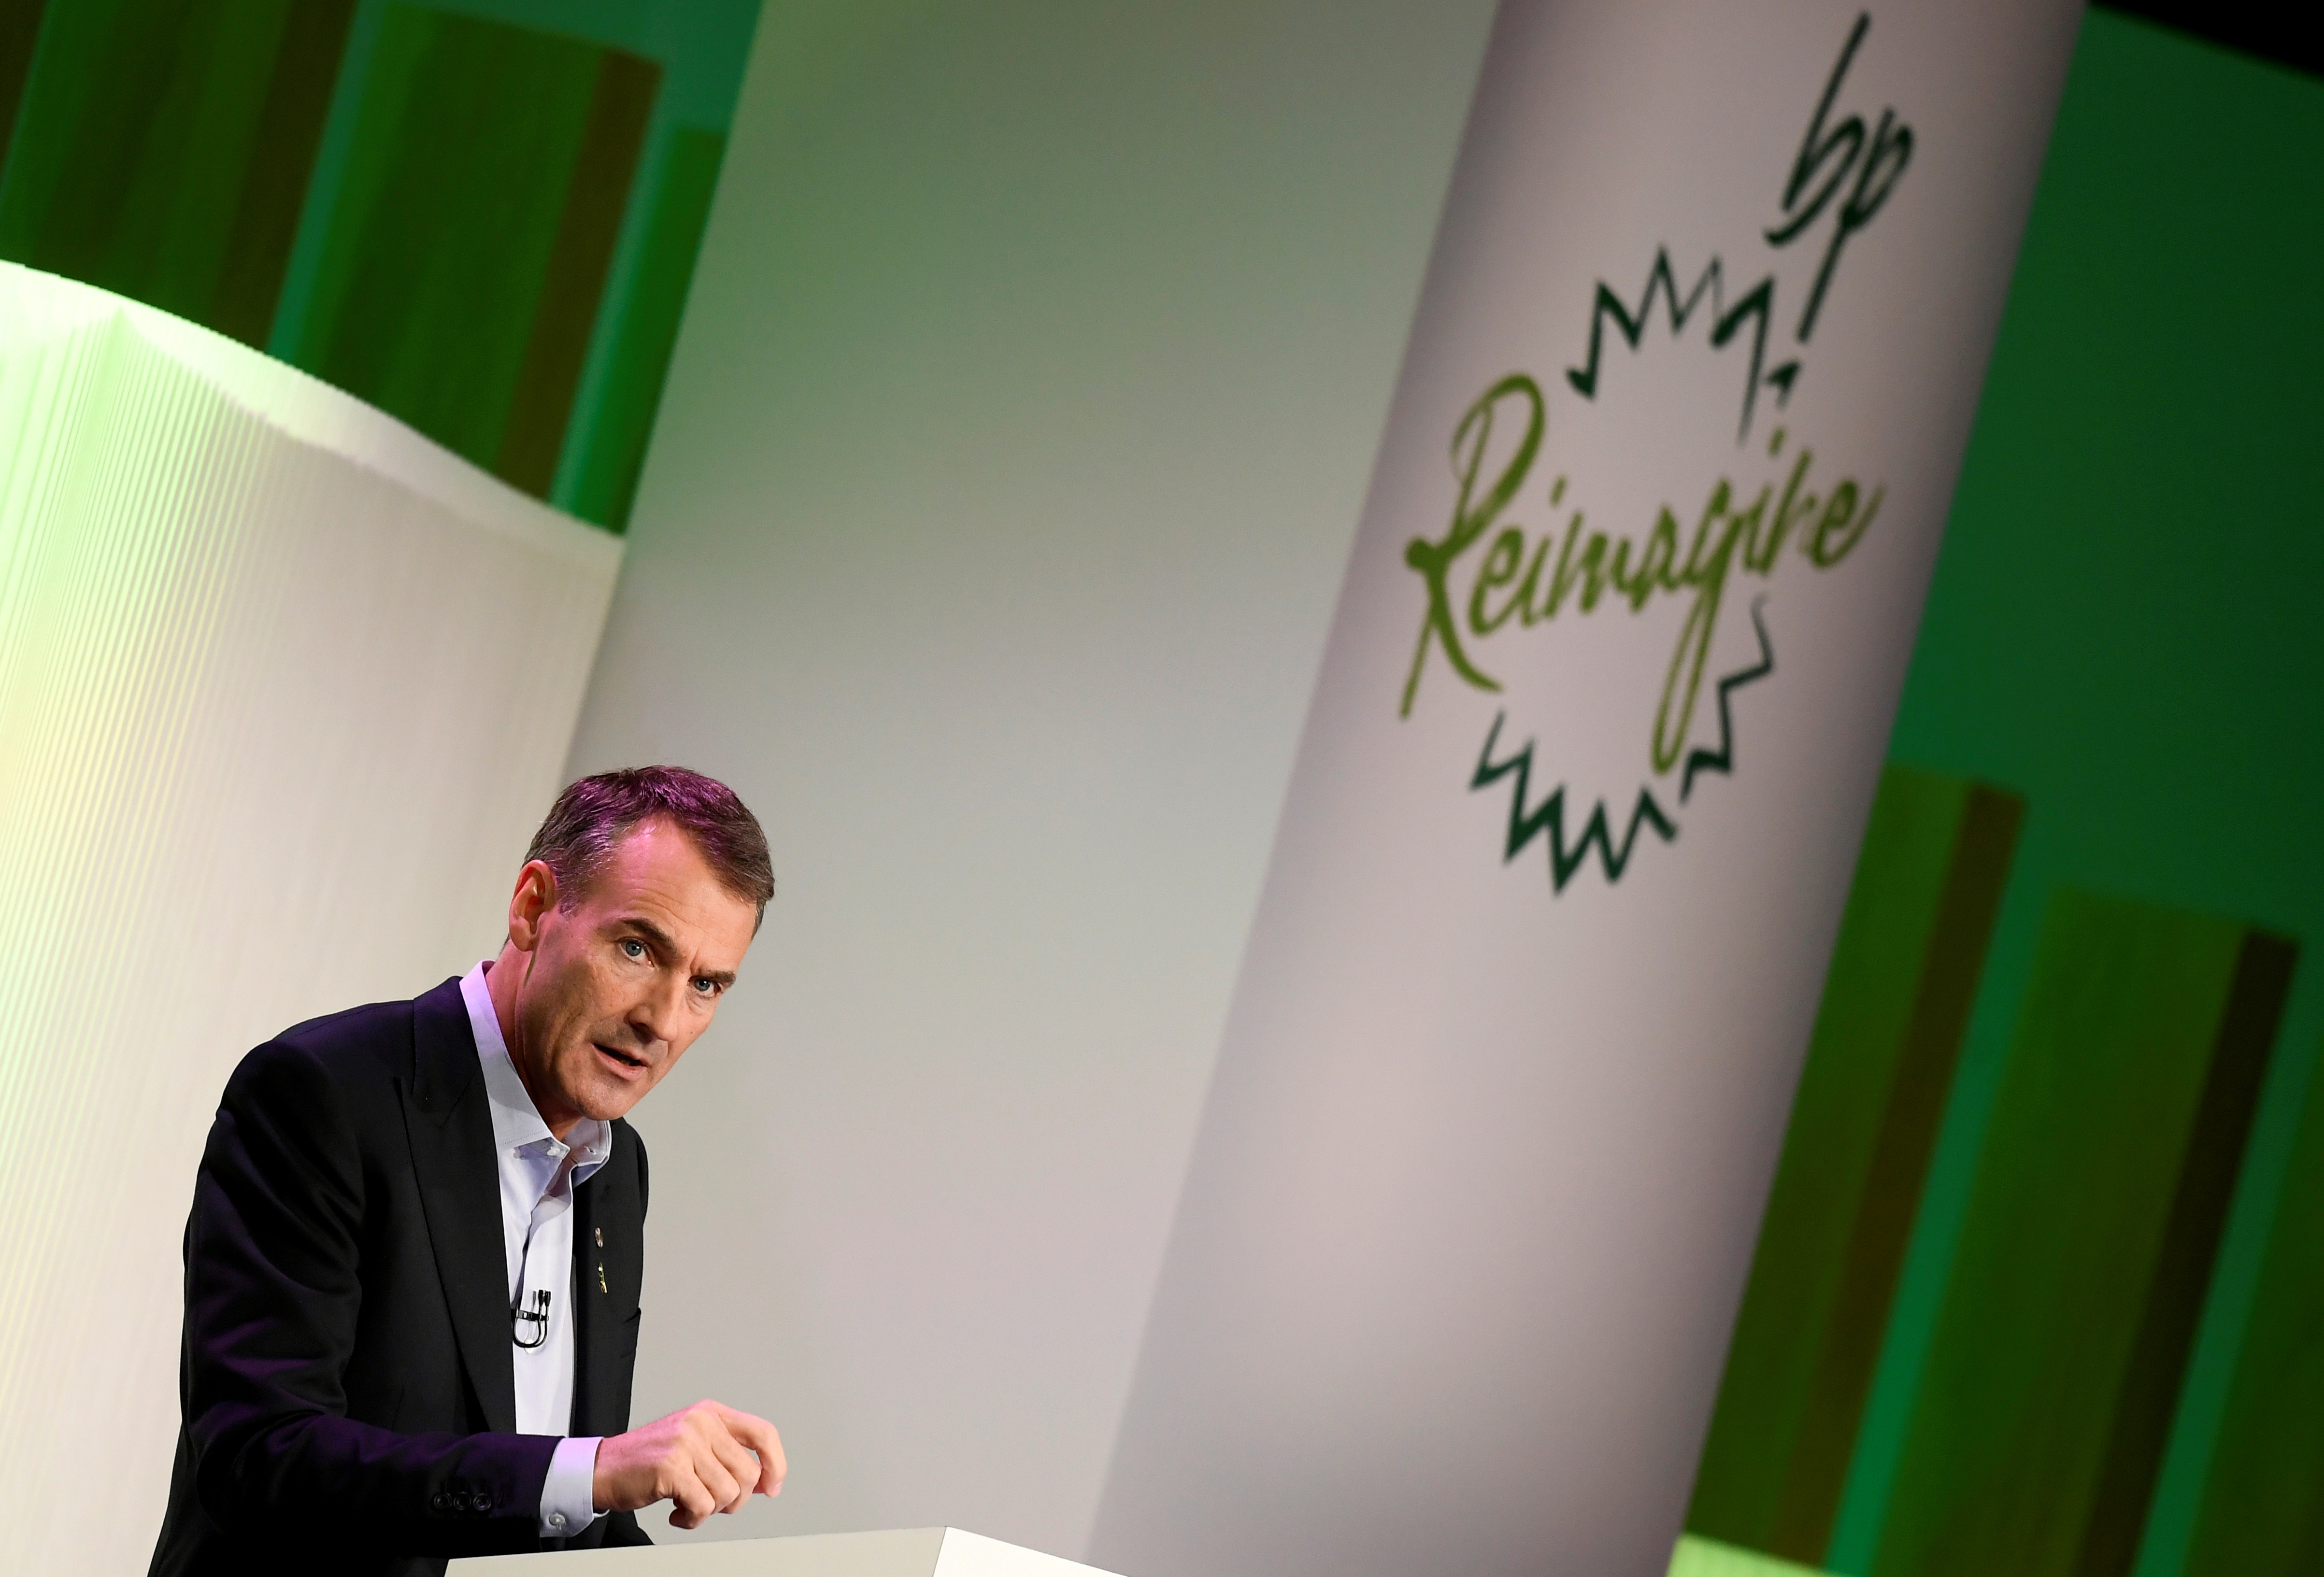 BP's new Chief Executive Bernard Looney gives a speech in central London, Britain February 12, 2020. REUTERS/Toby Melville